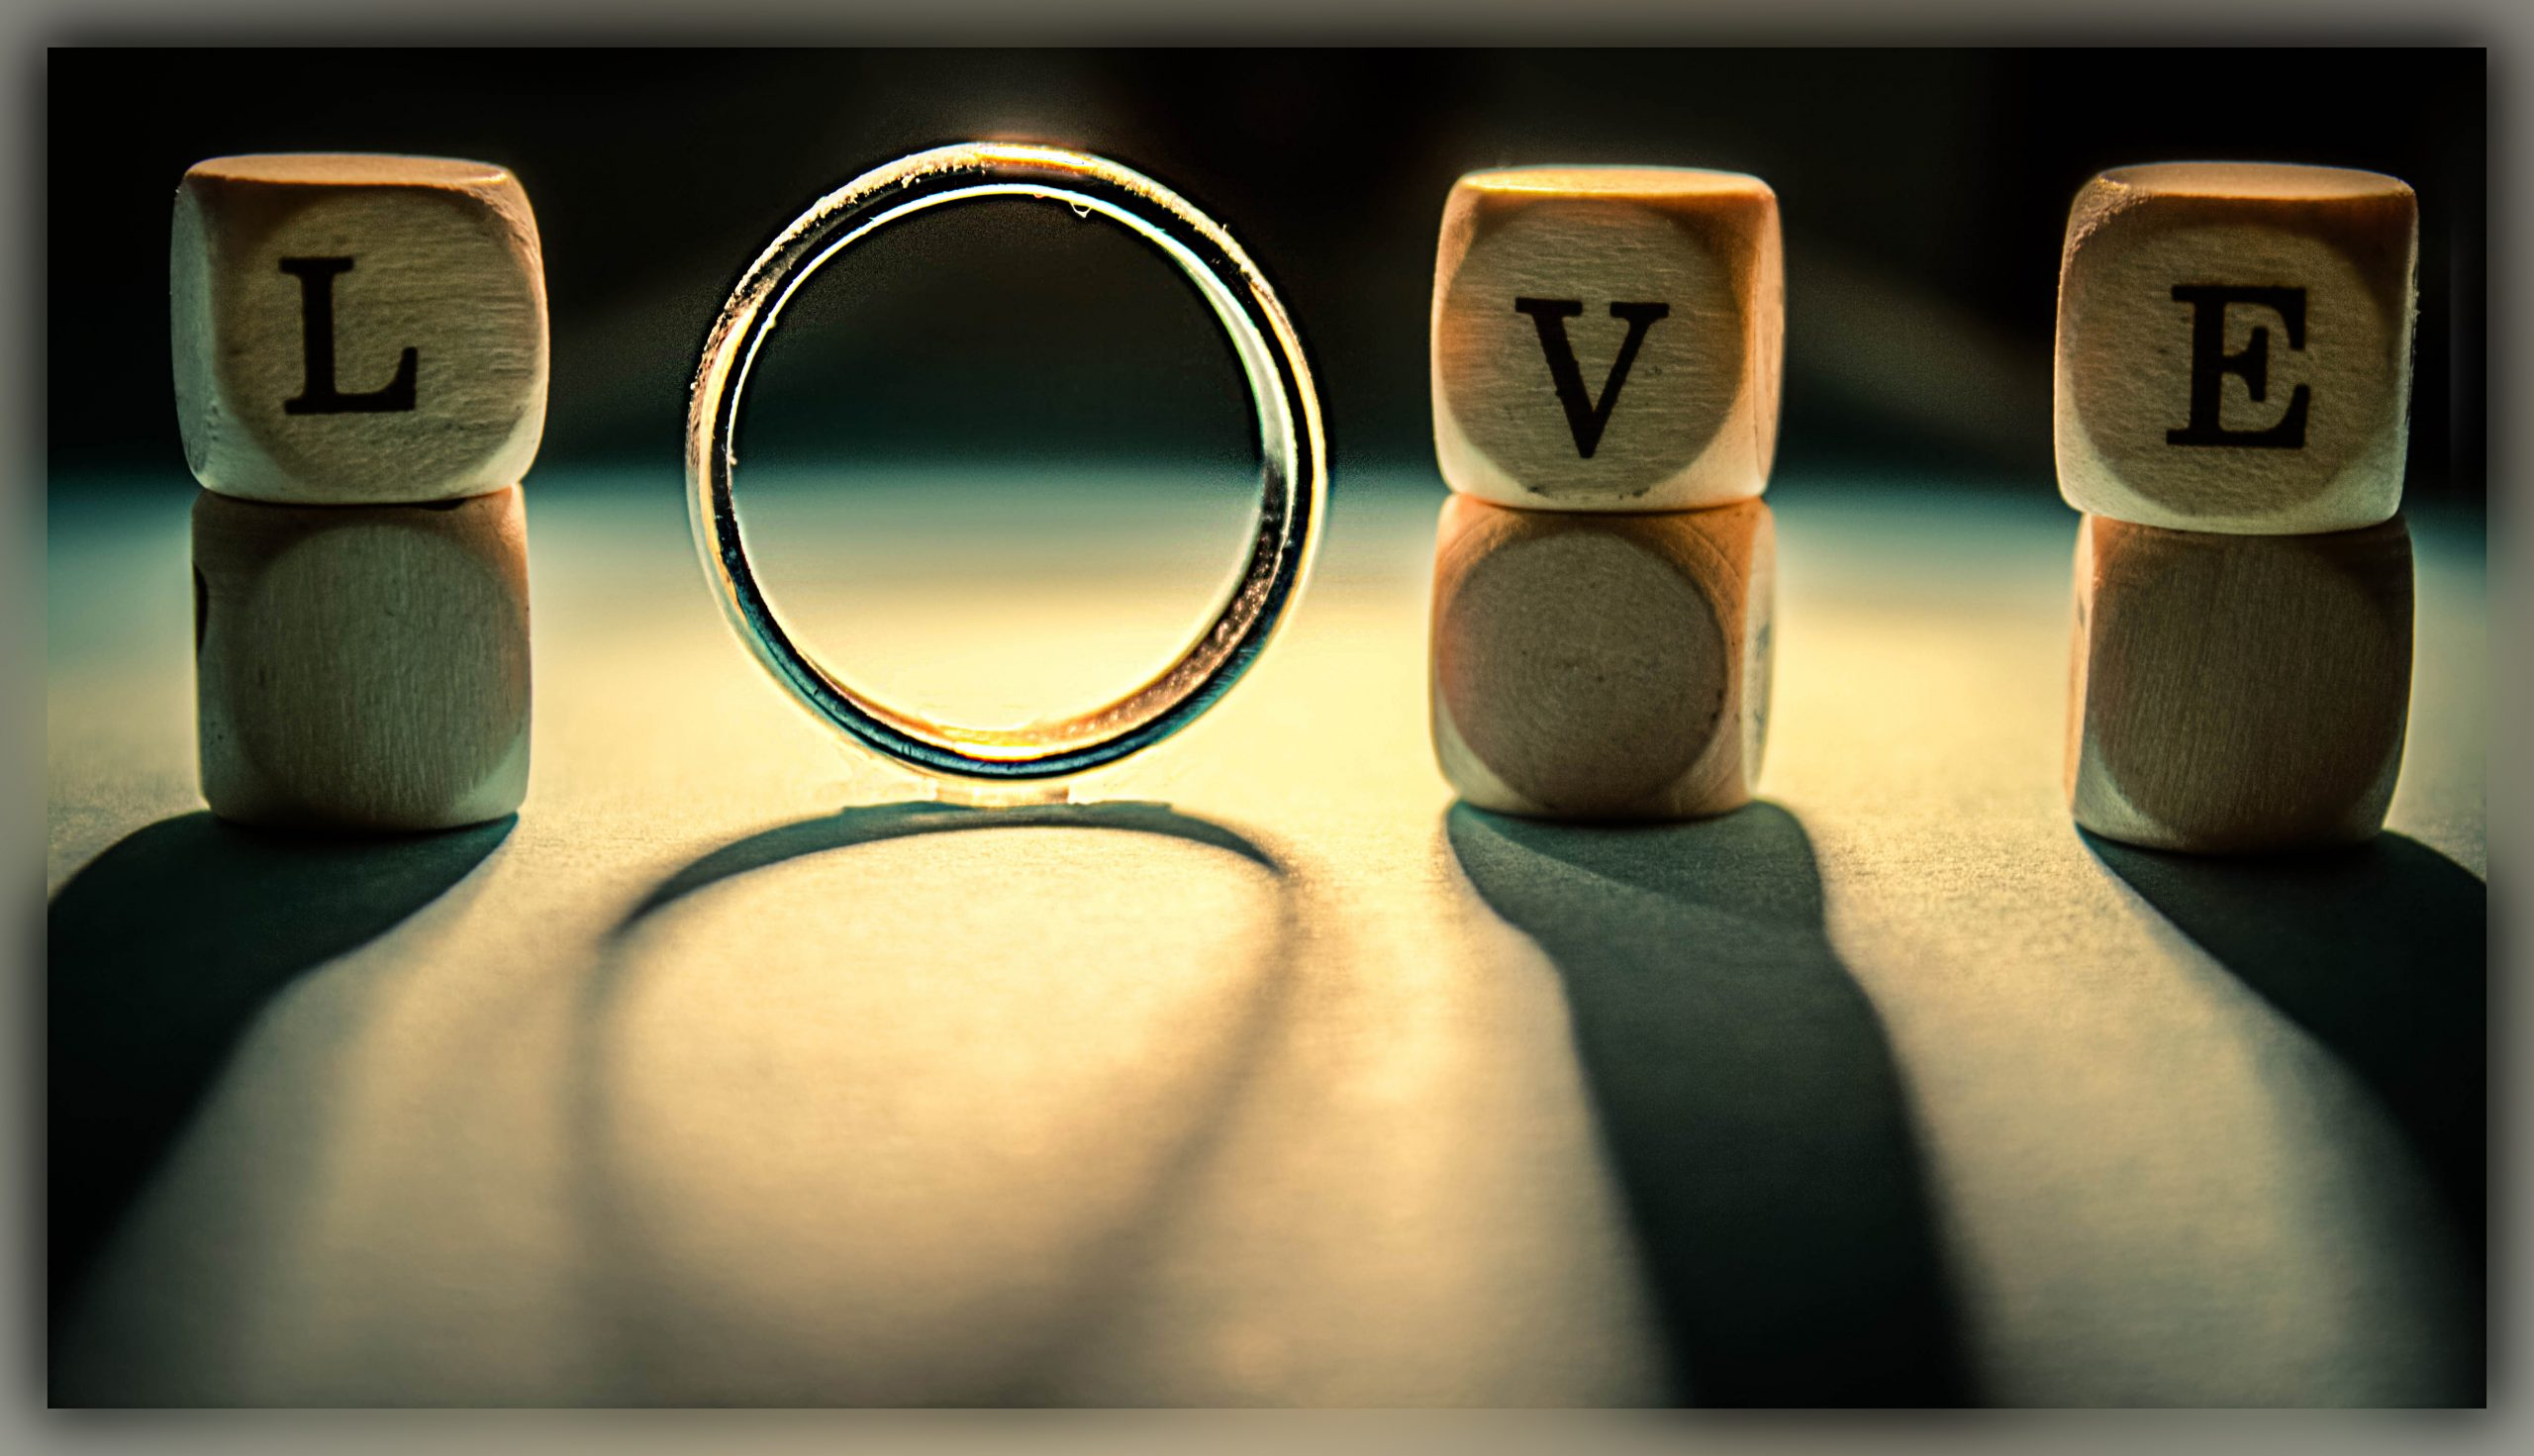 The word love. The letters L, V and E are in wooden blocks. The letter O is represented by a wedding ring.